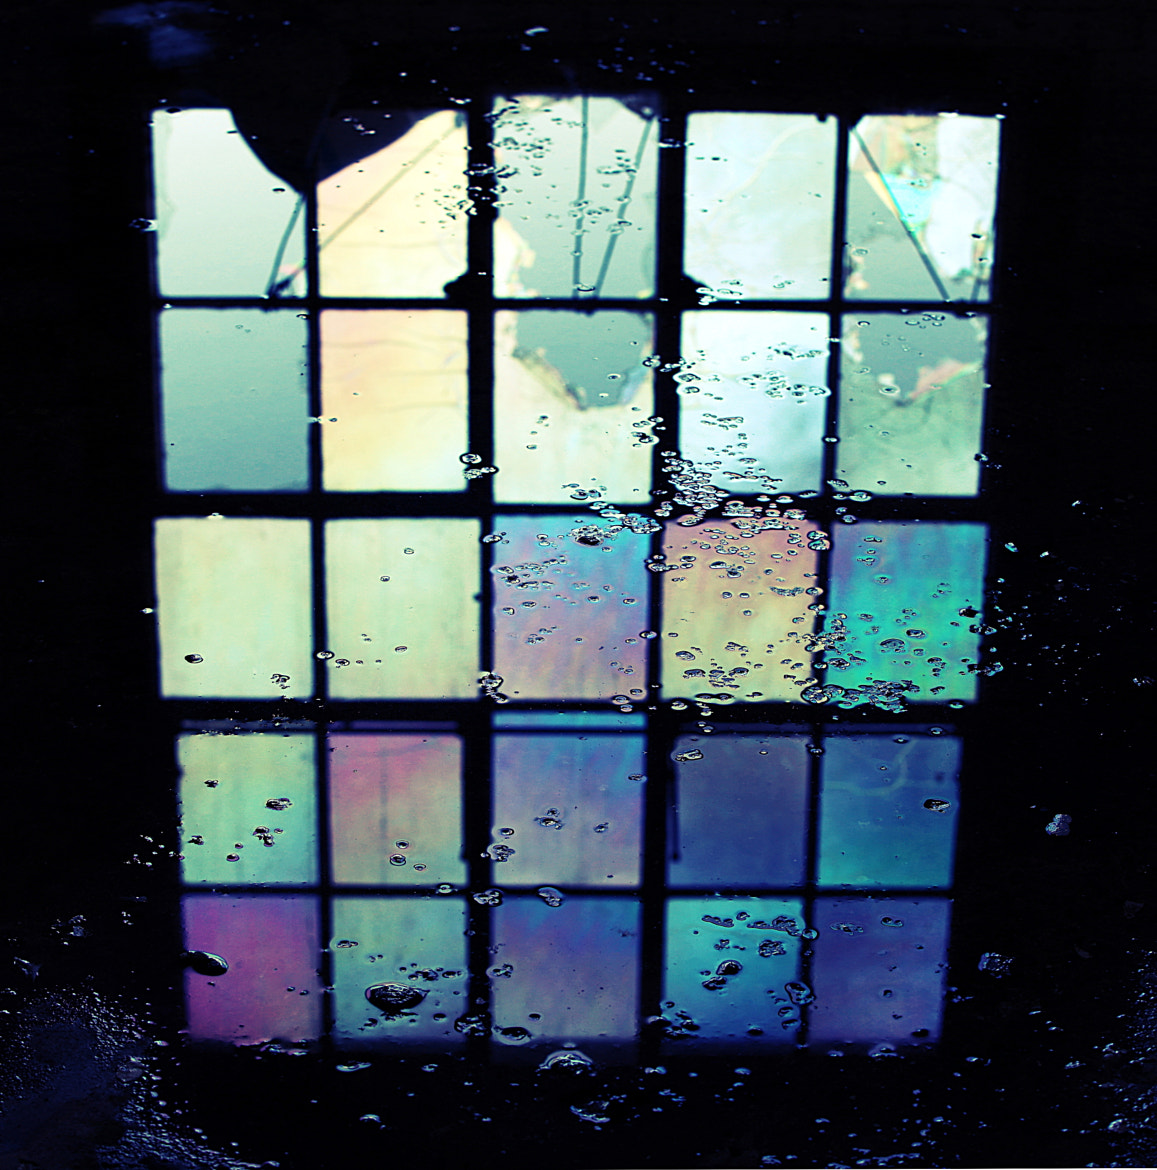 Photograph Rainbow window by Silverlight-images on 500px